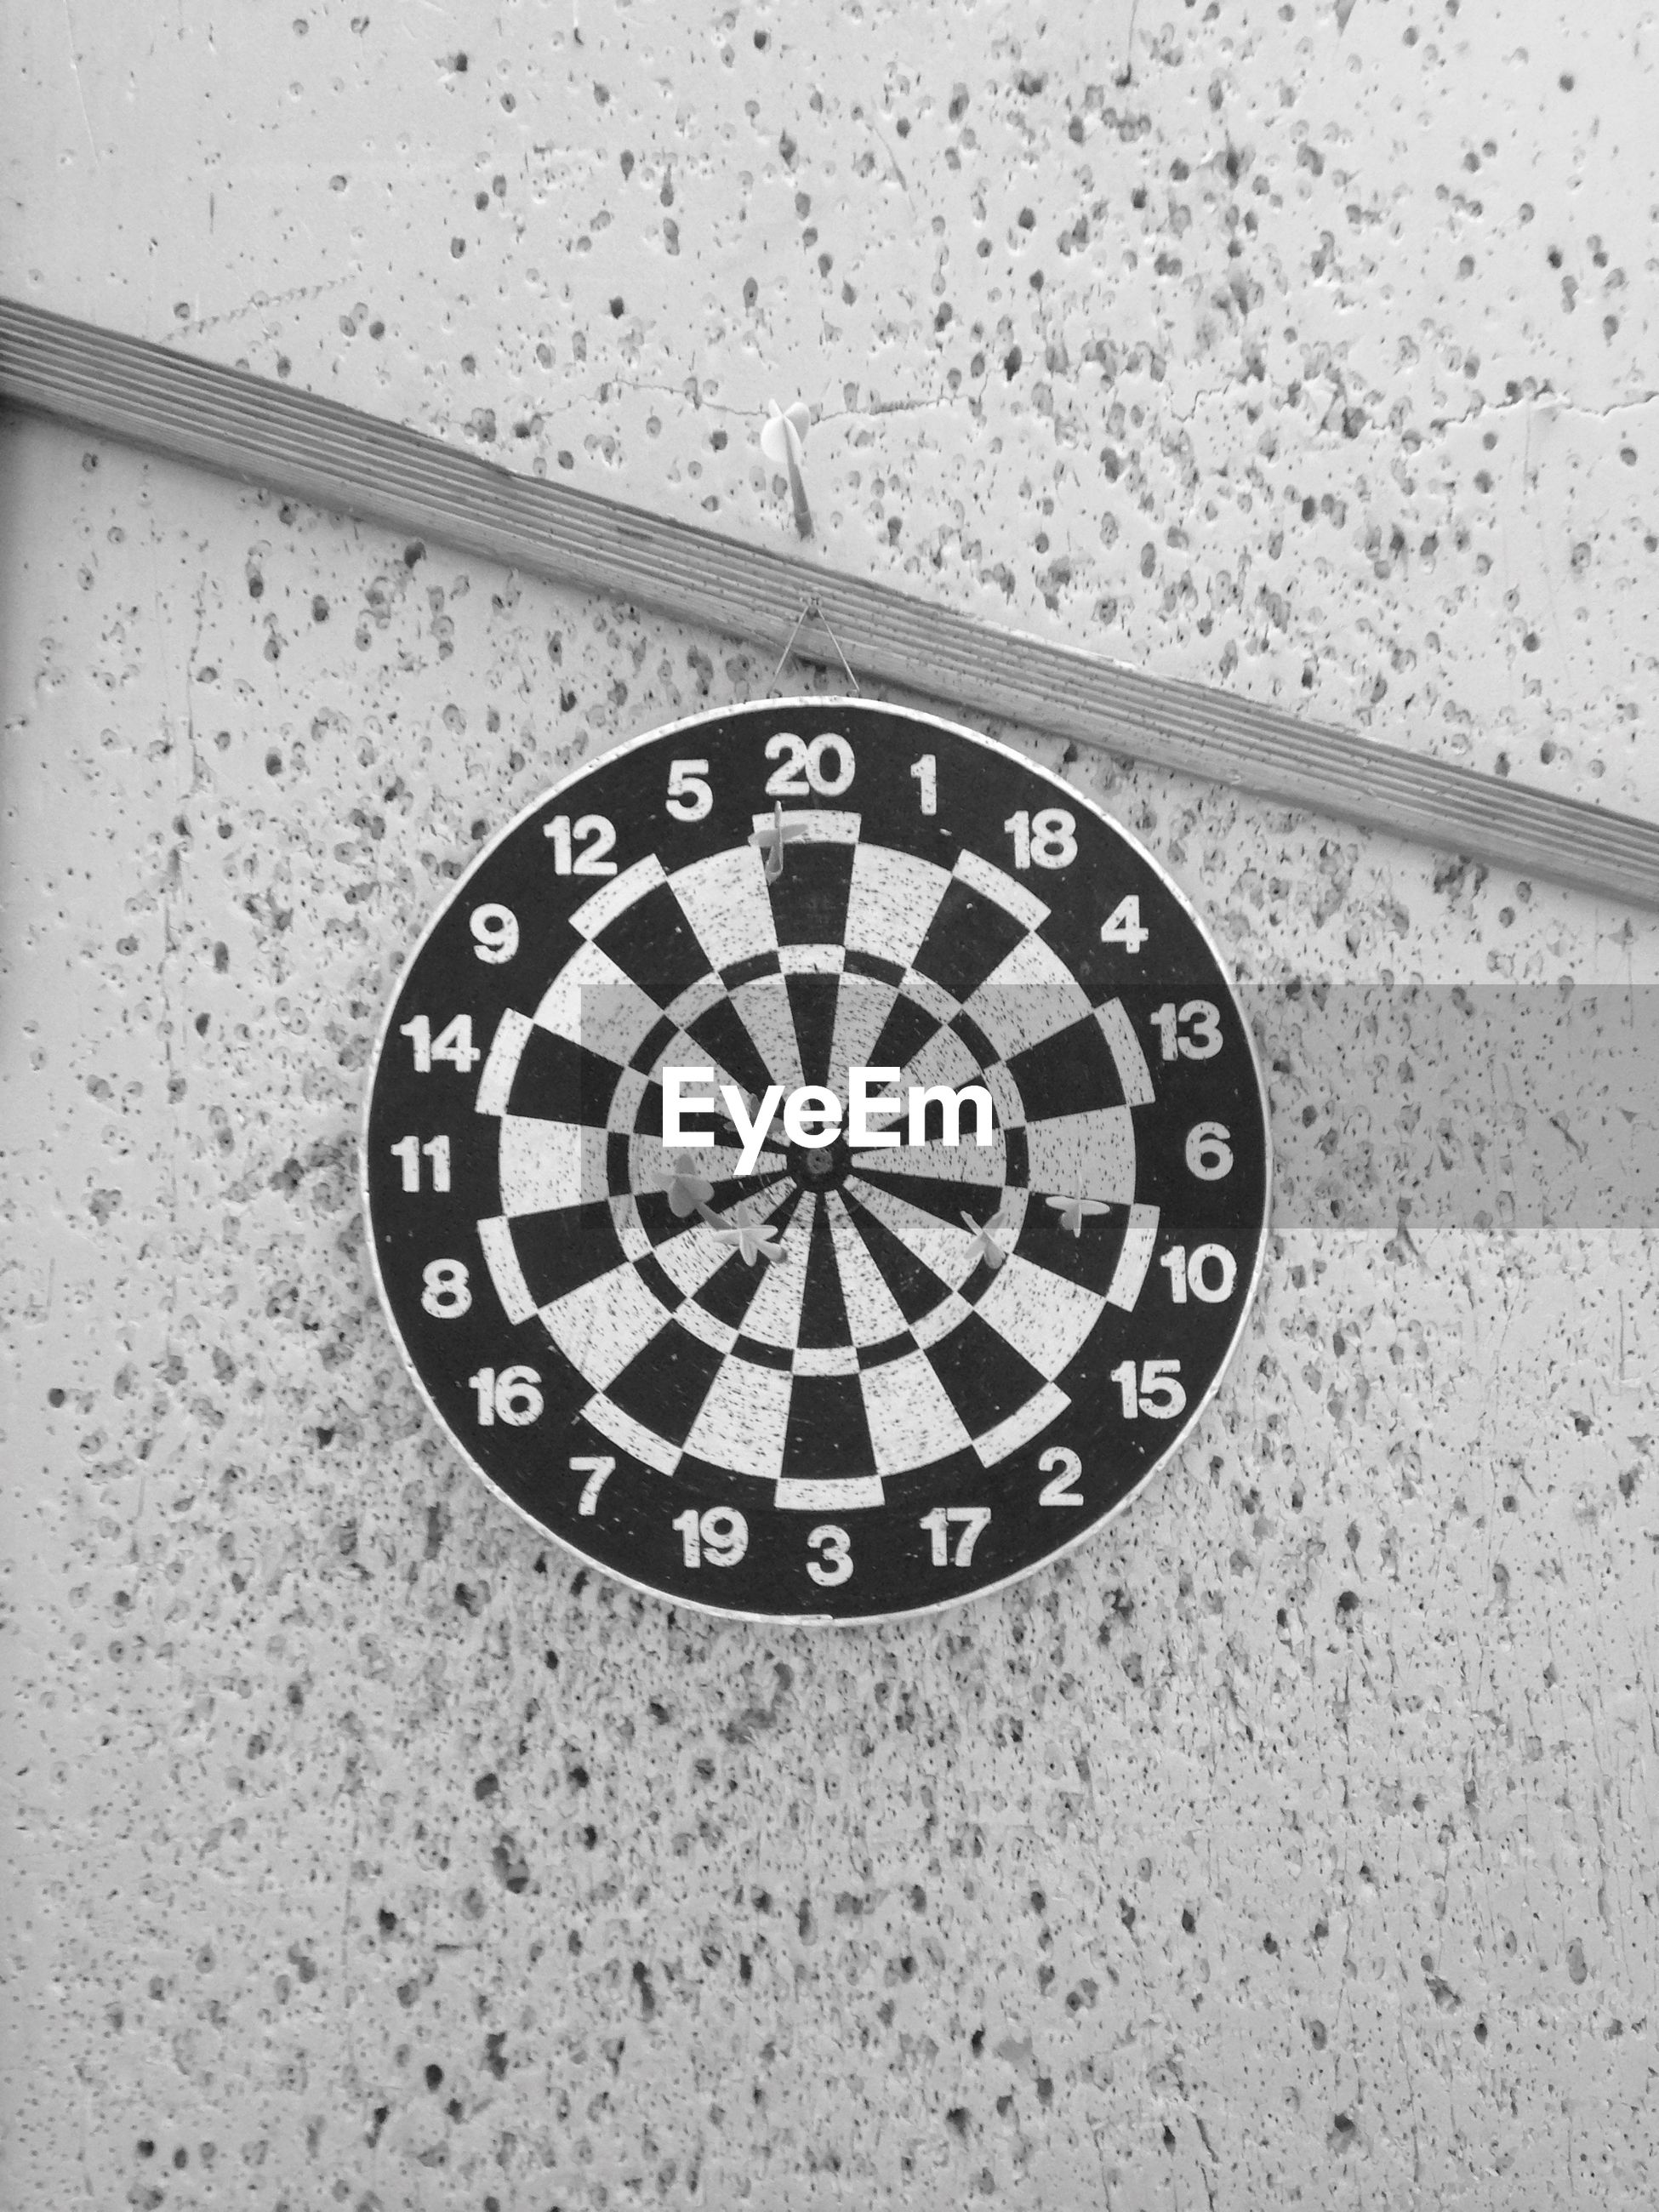 time, clock, number, circle, clock face, indoors, minute hand, close-up, geometric shape, instrument of time, wall clock, communication, text, roman numeral, single object, metal, accuracy, wall - building feature, no people, day